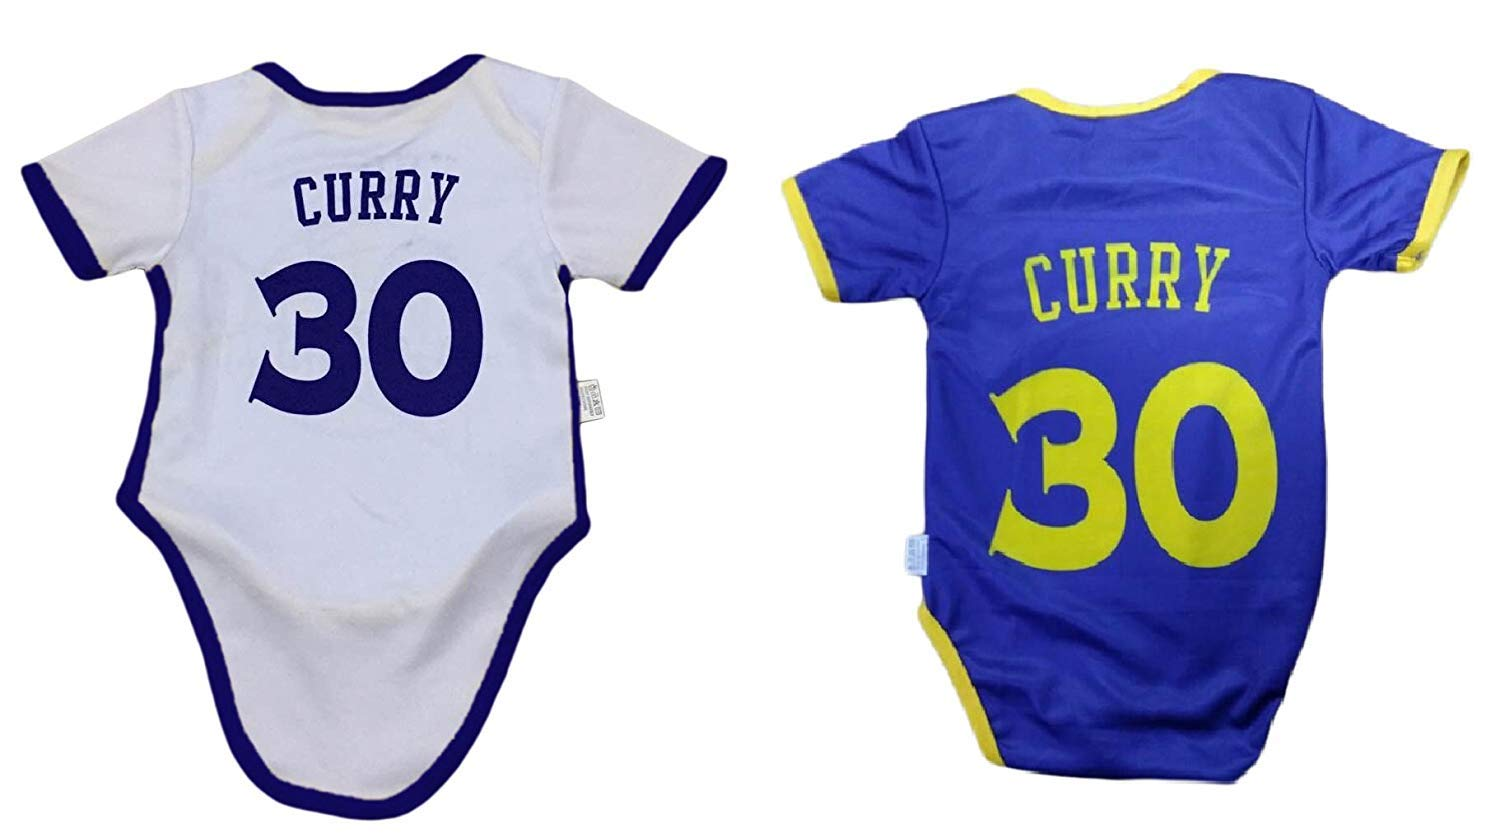 best loved db3a1 81b79 iSport Gifts Steph Curry Basketball Jersey Baby Infant & Toddler Onesies  Rompers Pack of 2 Home & Away Jersey Design Bundle